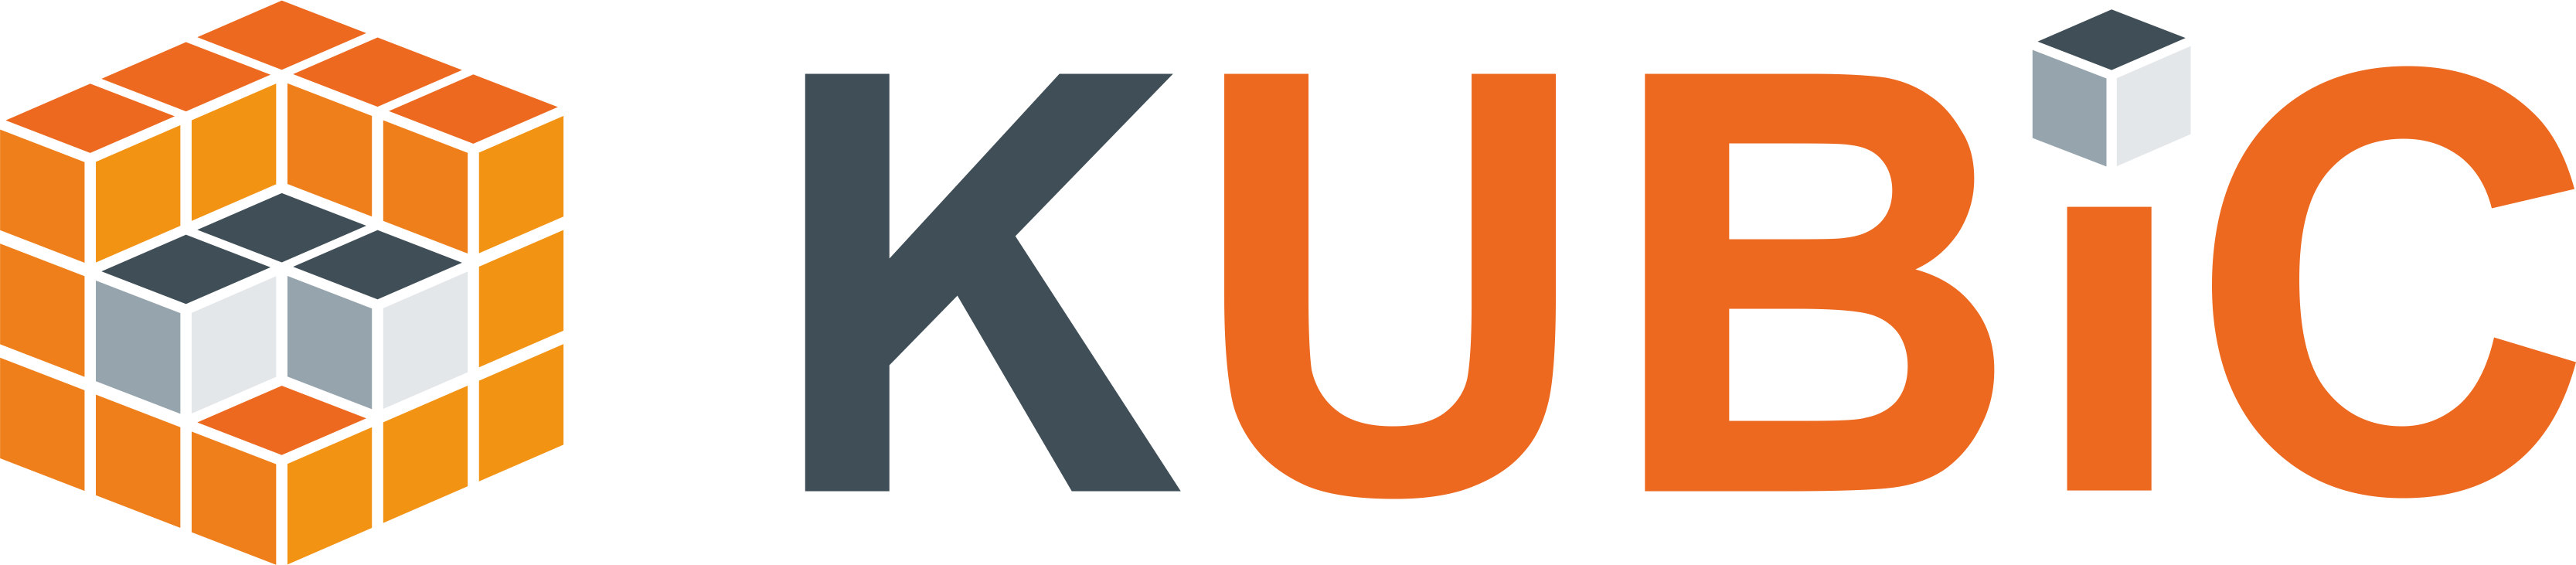 Kubic Electrical S.L.